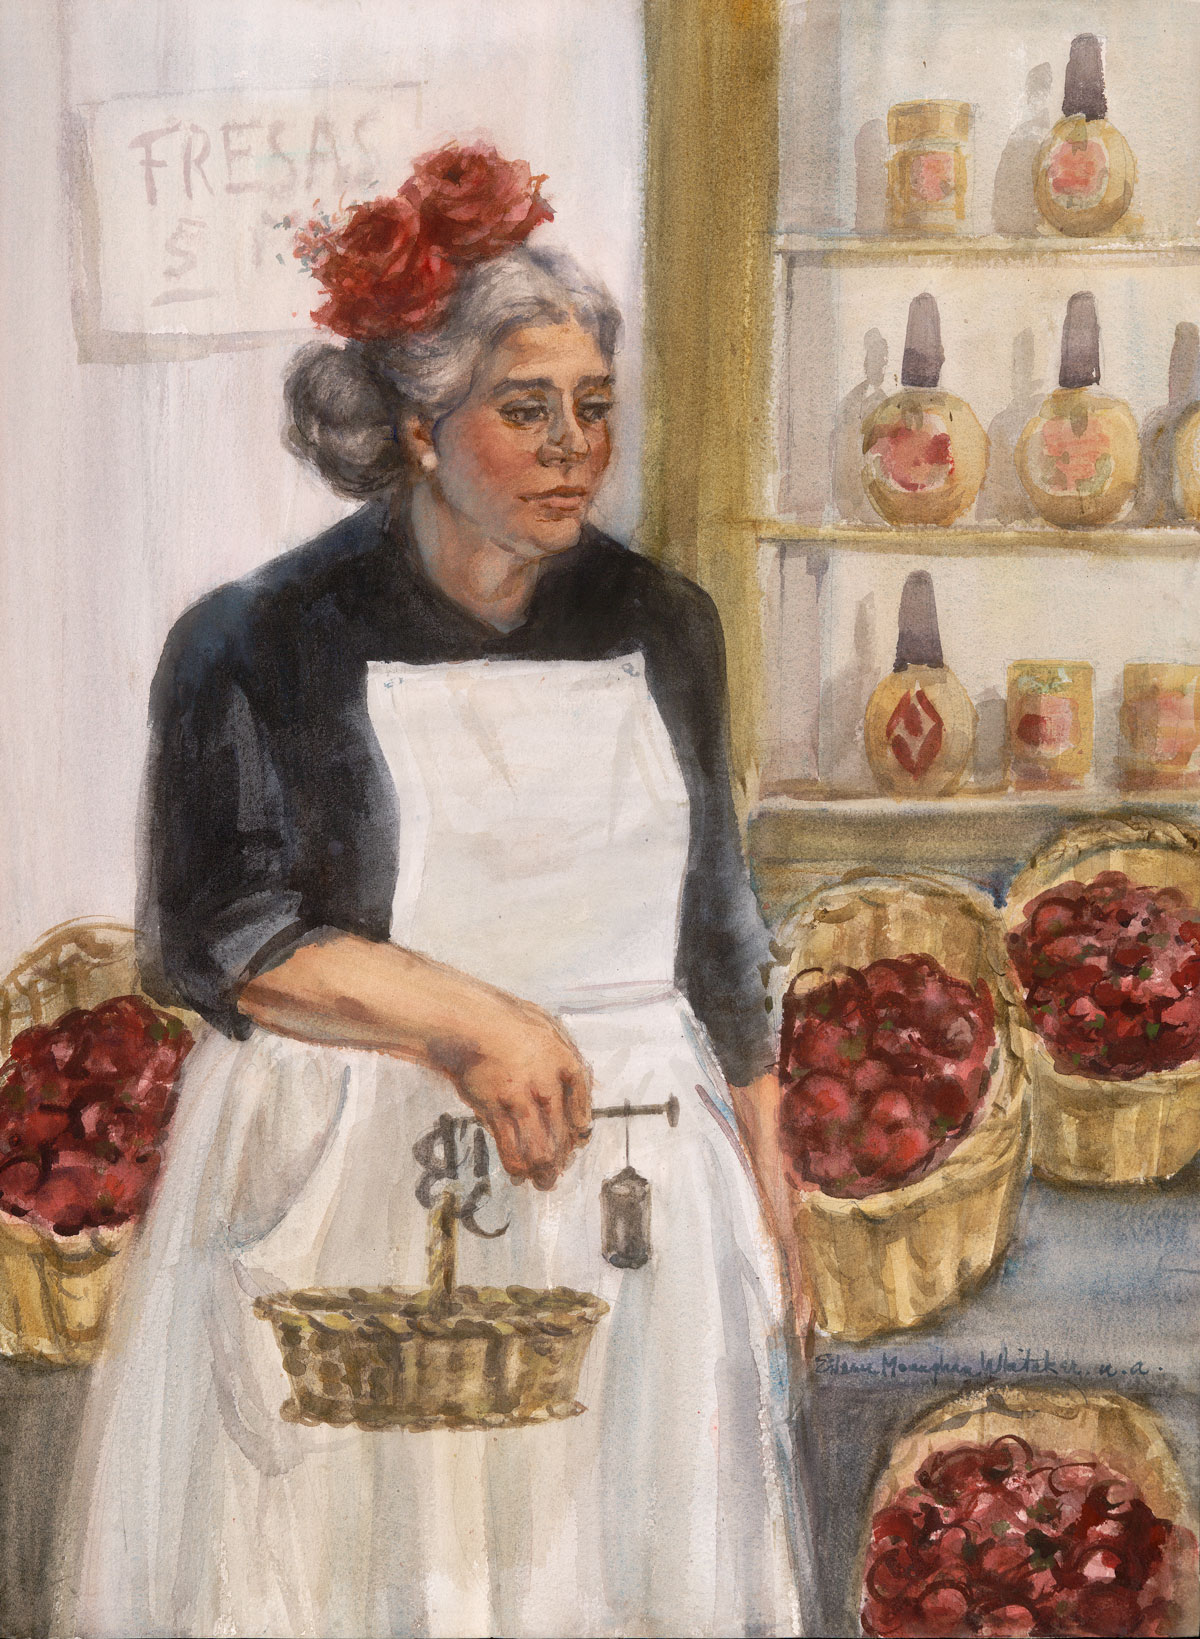 """Strawberries For Sale"" 1971 © Eileen Monaghan Whitaker A.N.A. 30x22 inches Watercolor"